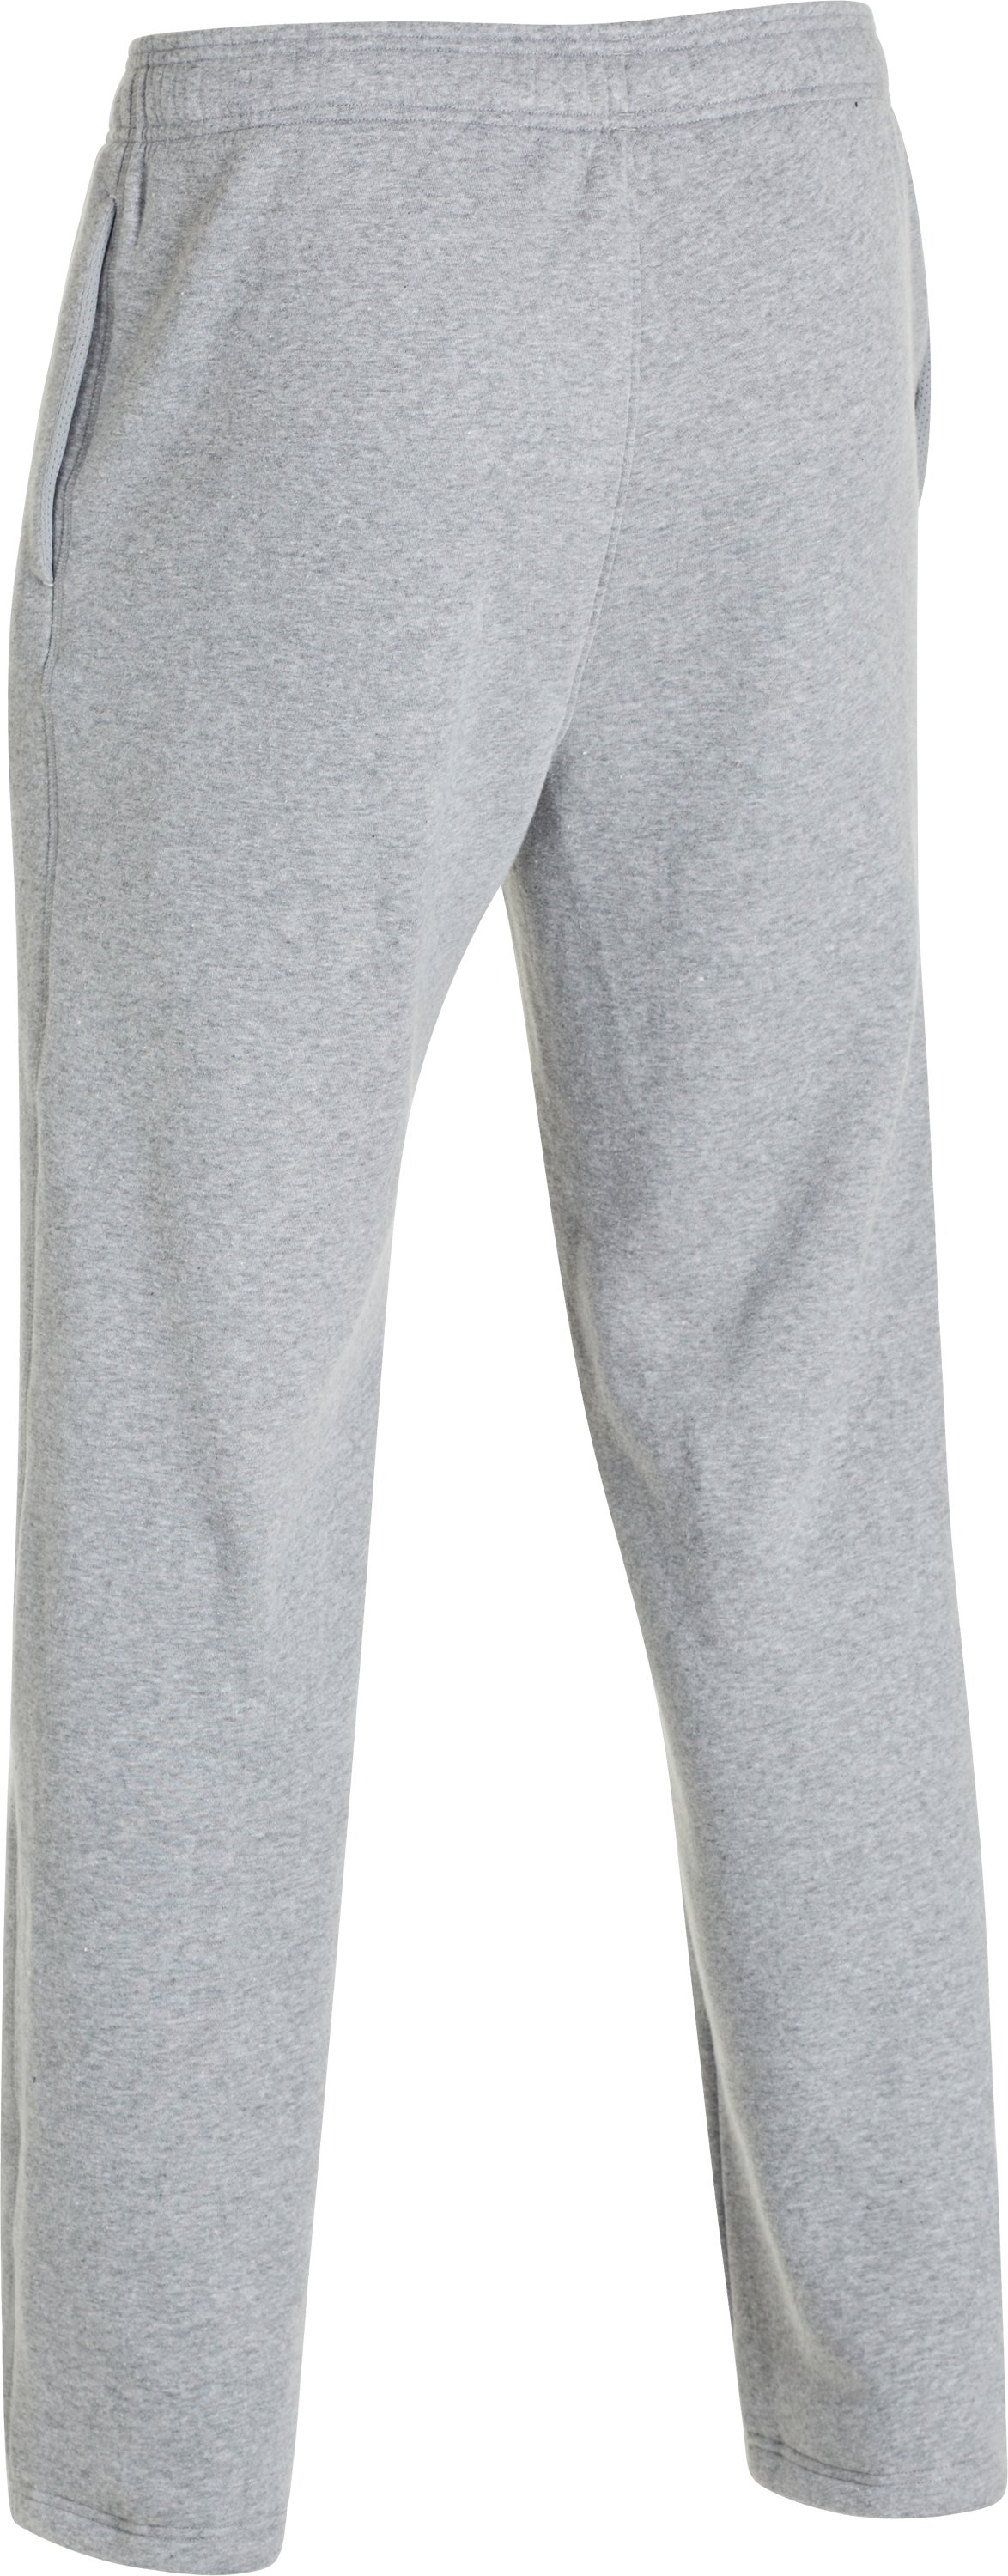 Men's UA Rival Fleece Team Pants, True Gray Heather, undefined